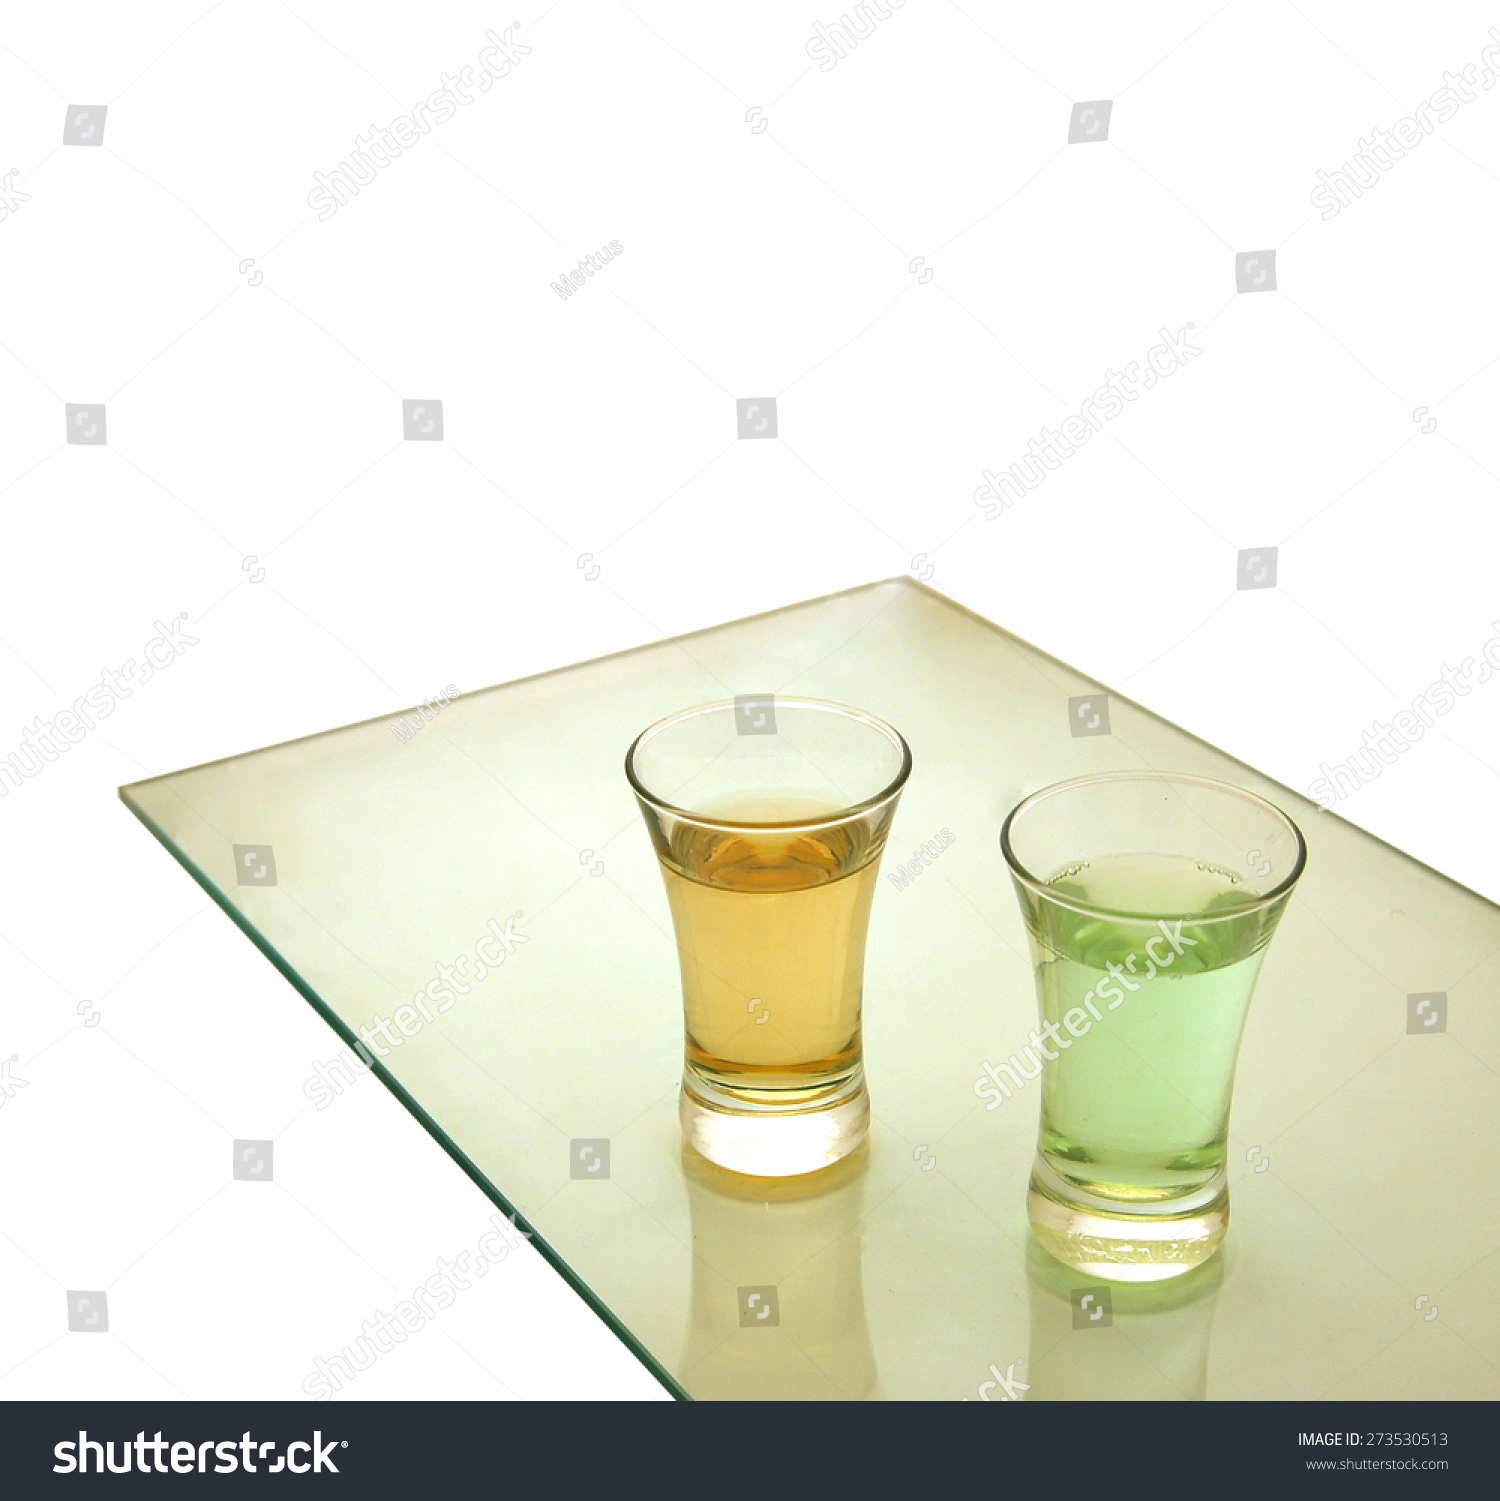 stock-photo-two-glass-shots-on-table-iso